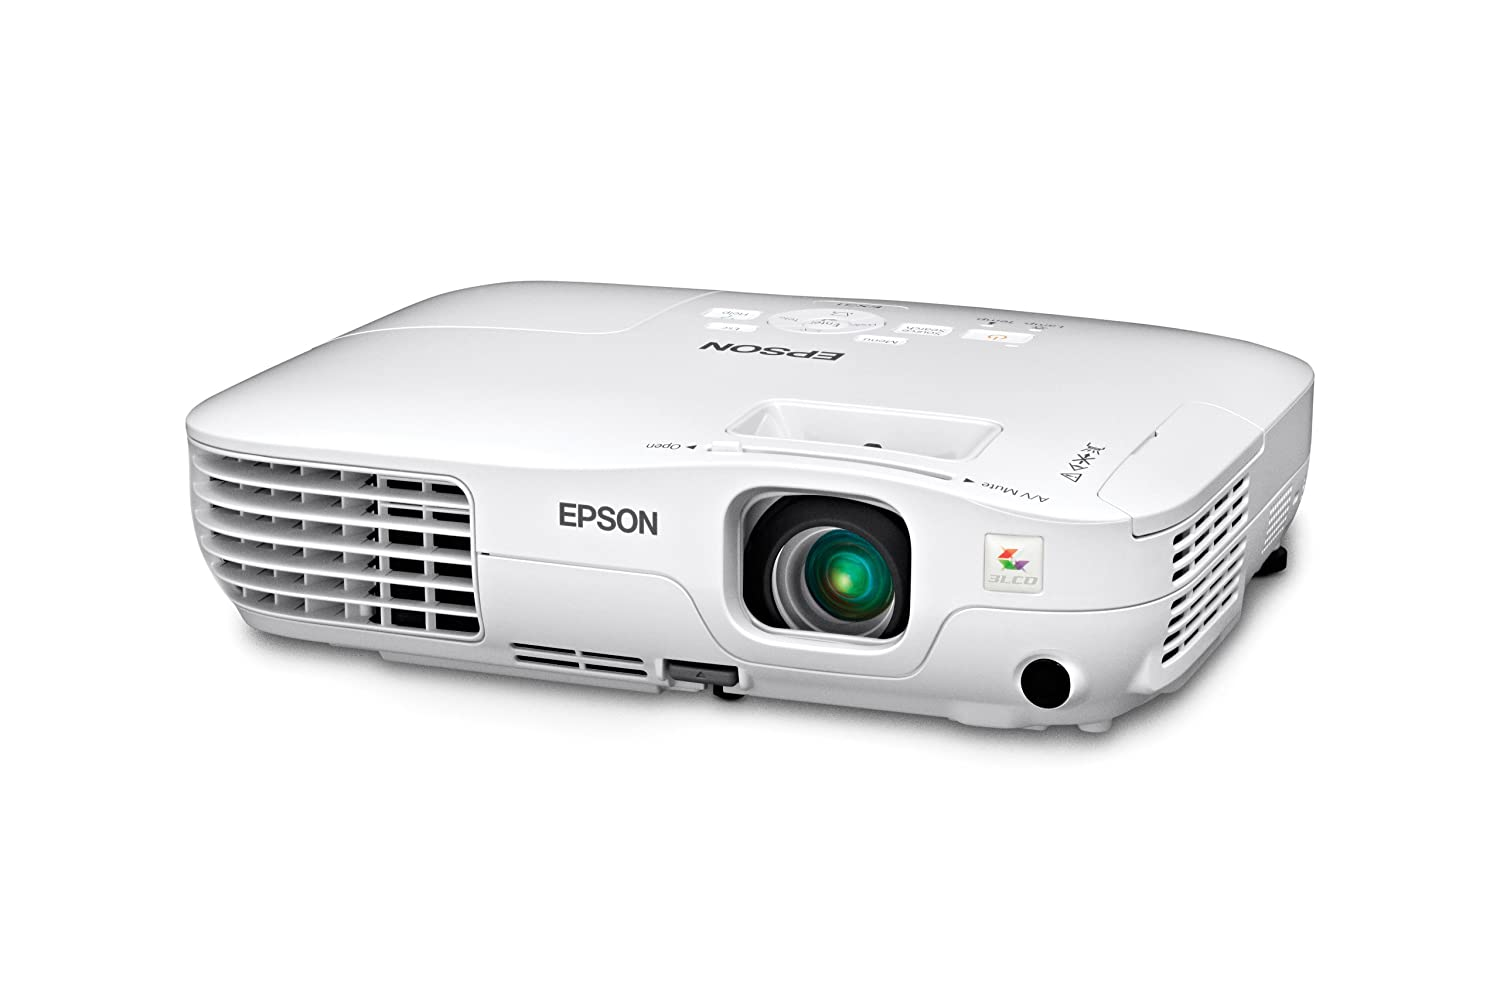 amazon com epson ex31 multimedia projector electronics rh amazon com Word Manual Guide User Guide Template